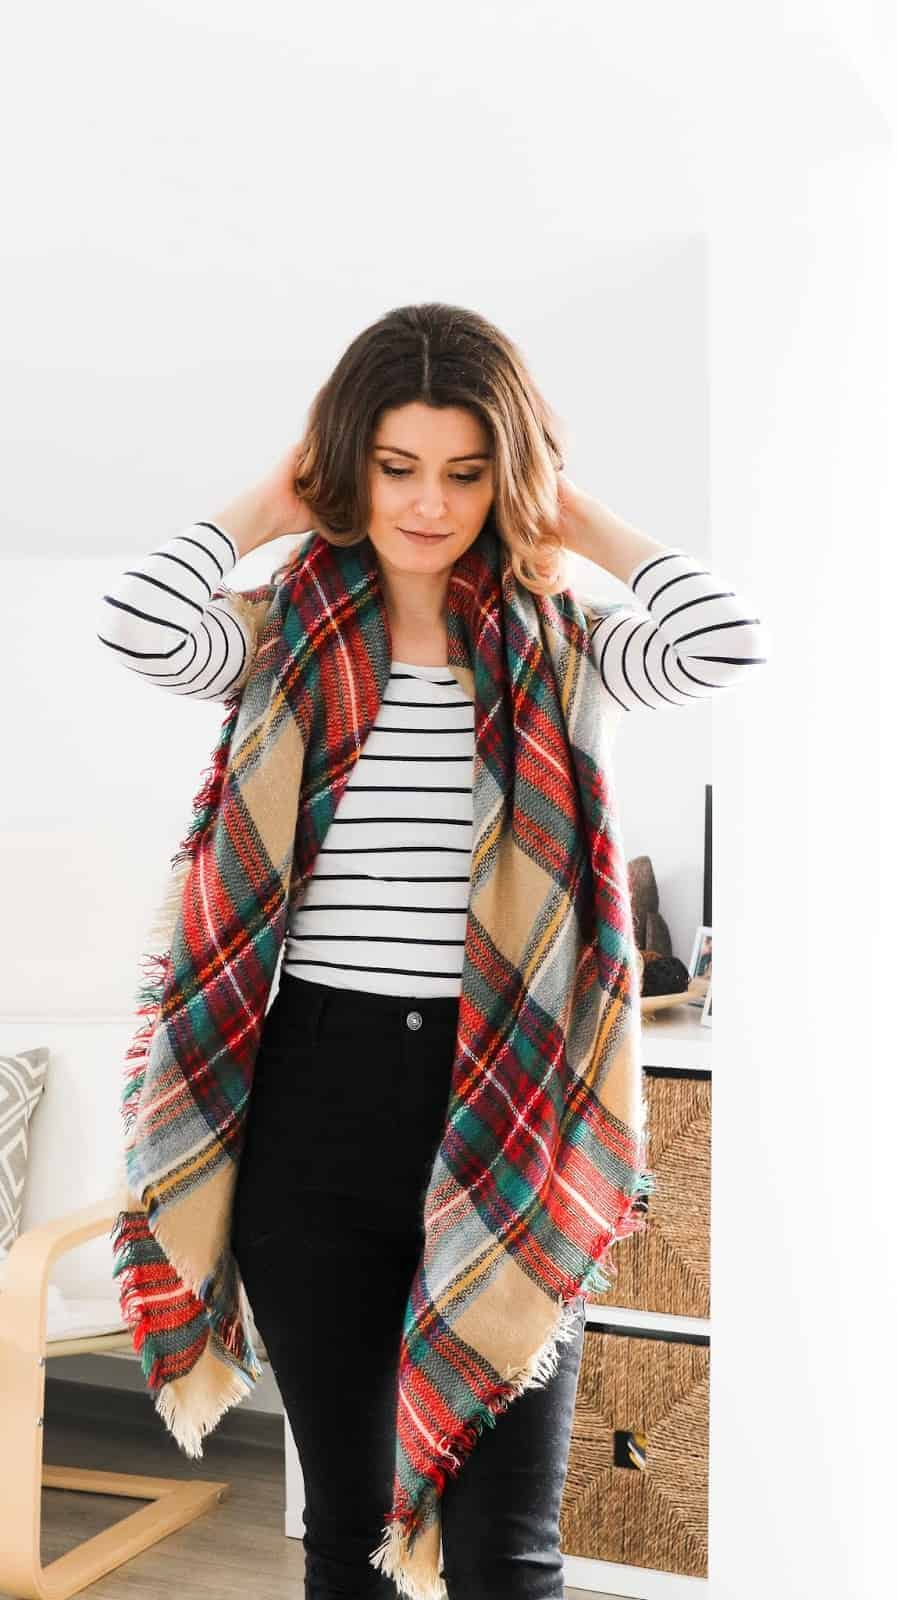 blanket scarf and stripes outfit for autumn winter style